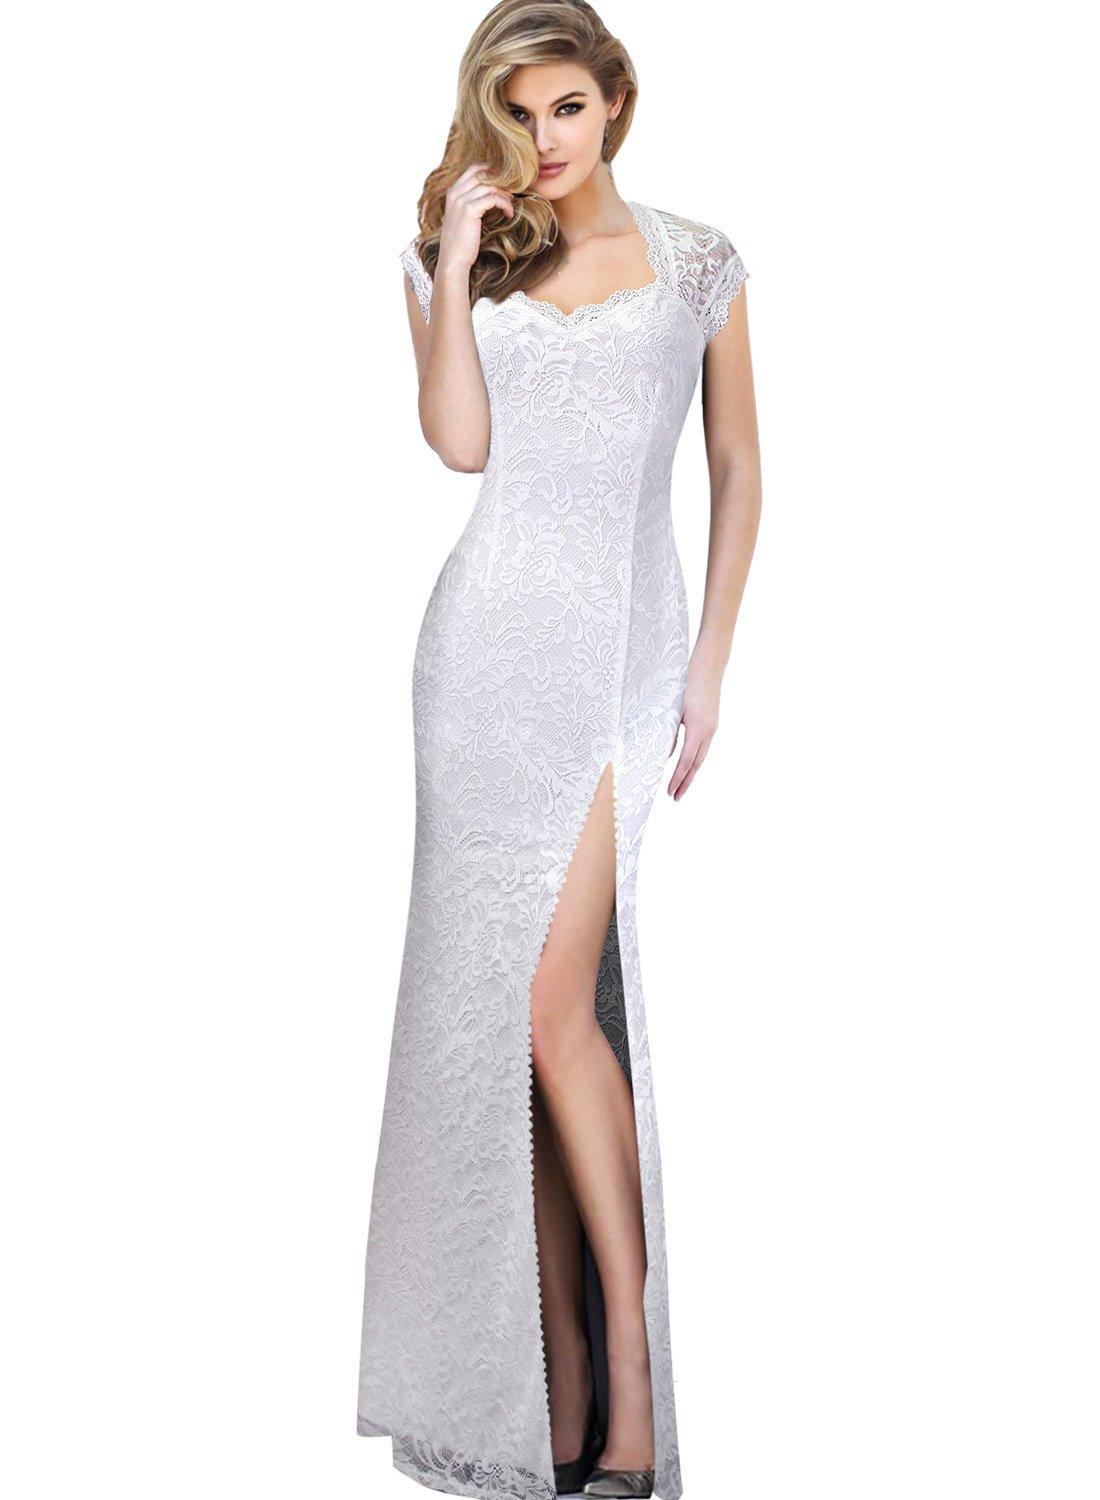 VFSHOW Womens Sexy Elegant Floral Lace Formal Wedding Prom Party Maxi Dress 745 WHT S